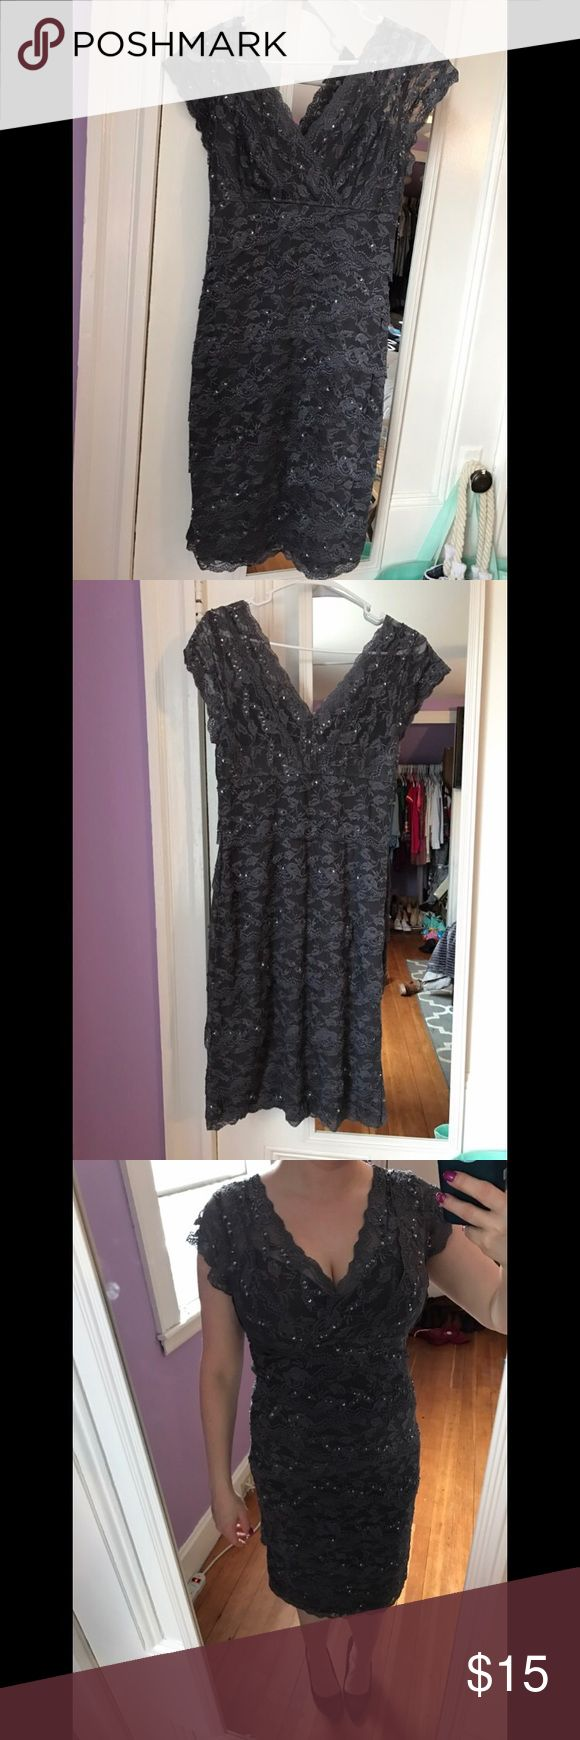 """Gray sequin dress Grey sequin midi dress, stretchy, wore once. 4'11"""", D bust. Dresses Midi"""